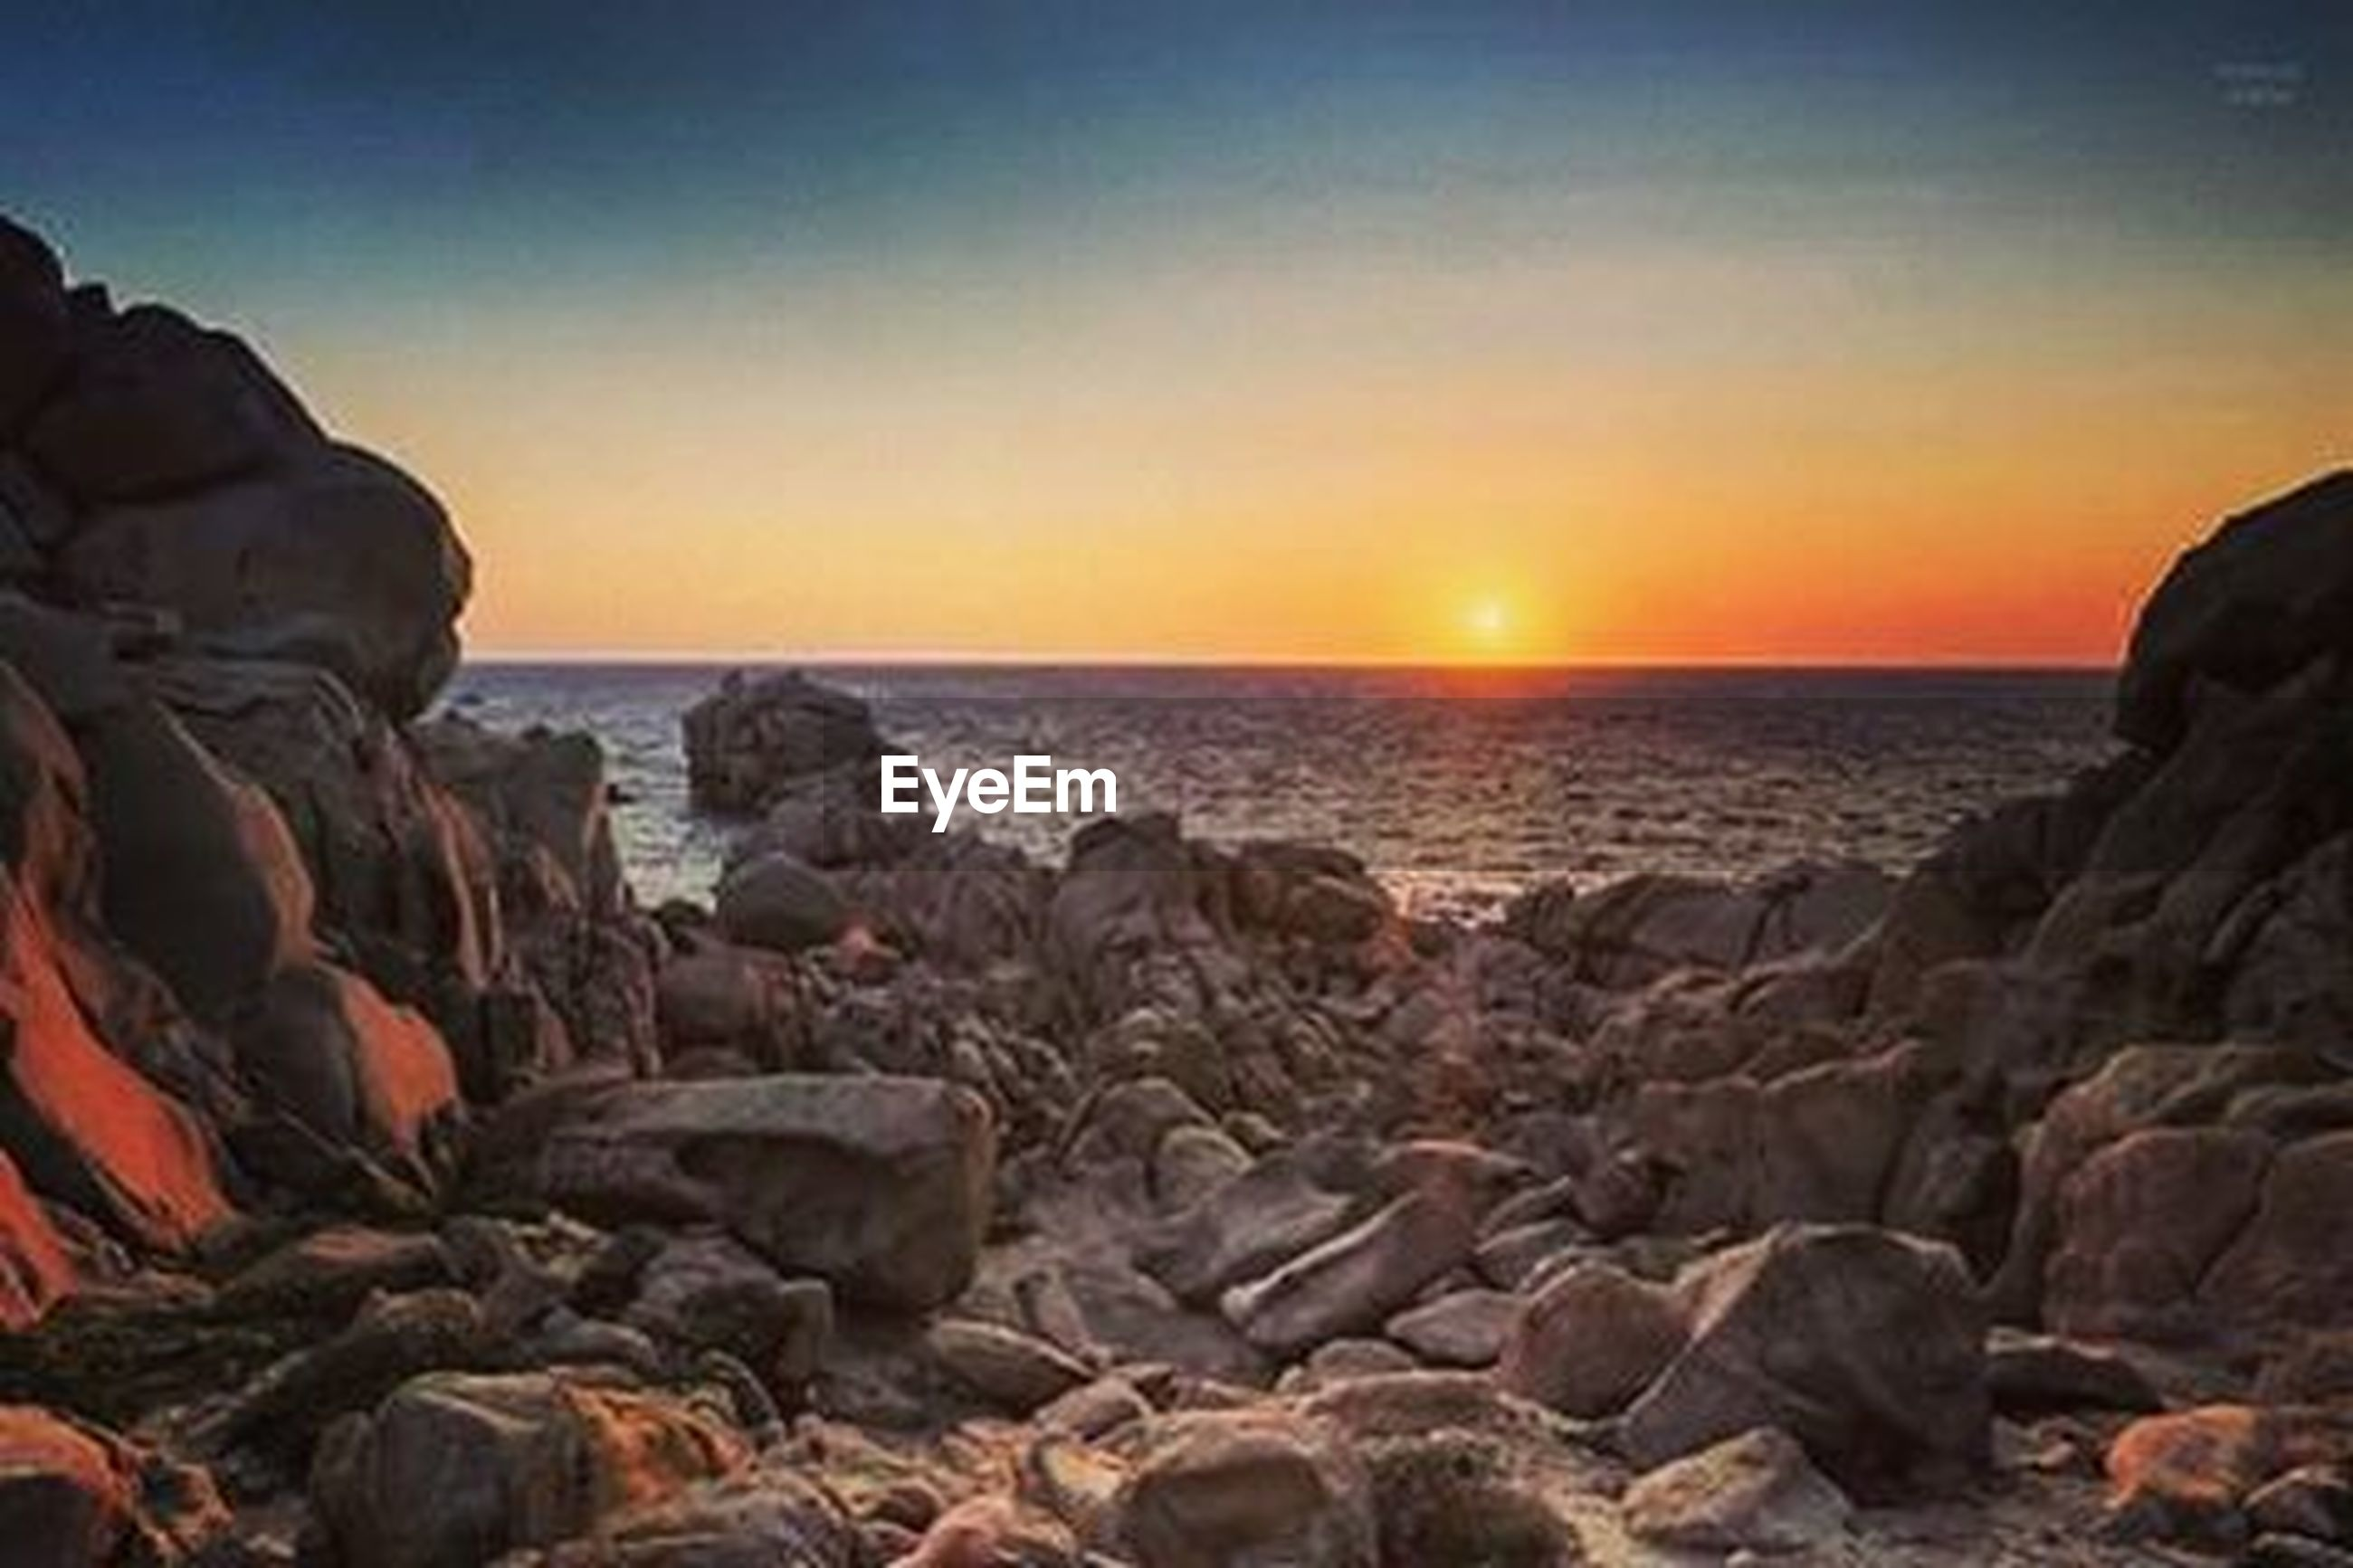 sea, sunset, horizon over water, water, scenics, rock - object, tranquil scene, tranquility, beauty in nature, rock formation, beach, nature, orange color, shore, sun, rock, idyllic, clear sky, sky, sunlight